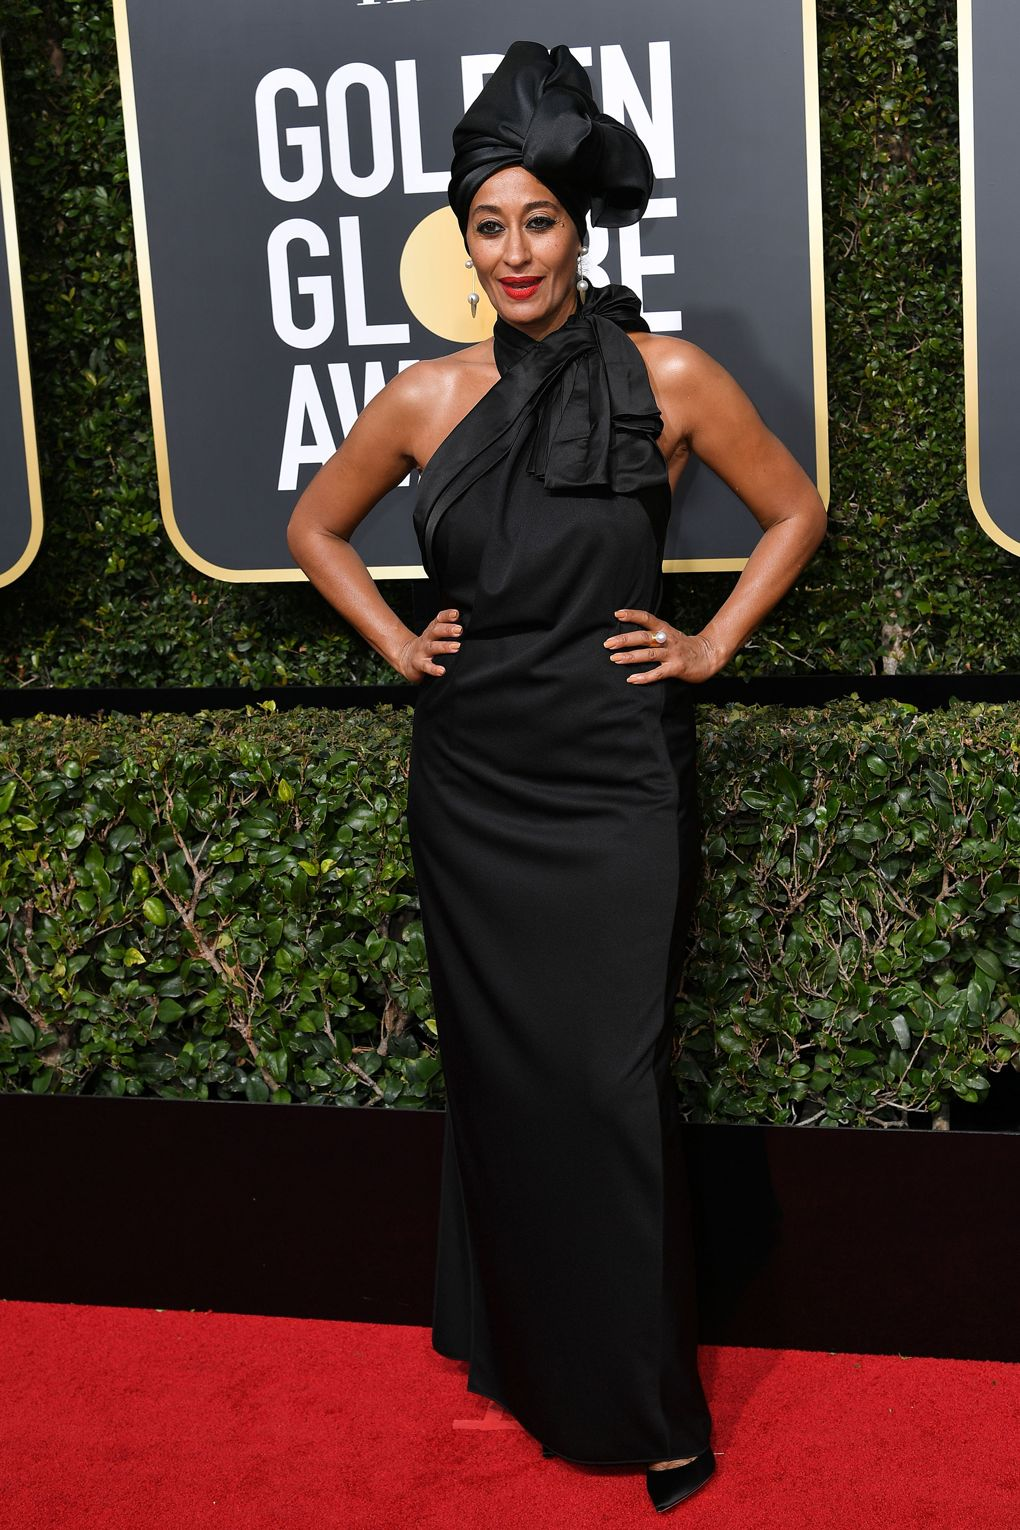 Golden Globes 2018 Red Carpet - Tracee Ellis Ross in Marc Jacobs - black dresses for times up - fight against sexual harassment - women empowerment - Photo credit Rex/Shutterstock